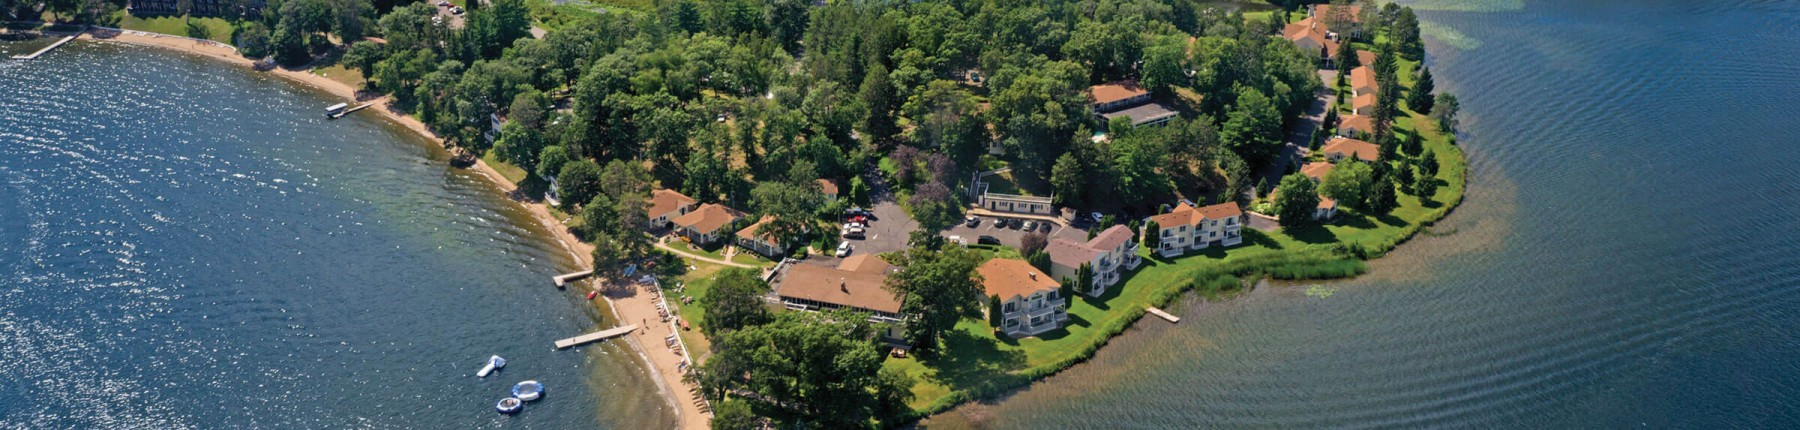 Madden's aerial view - Gull Lake Resort